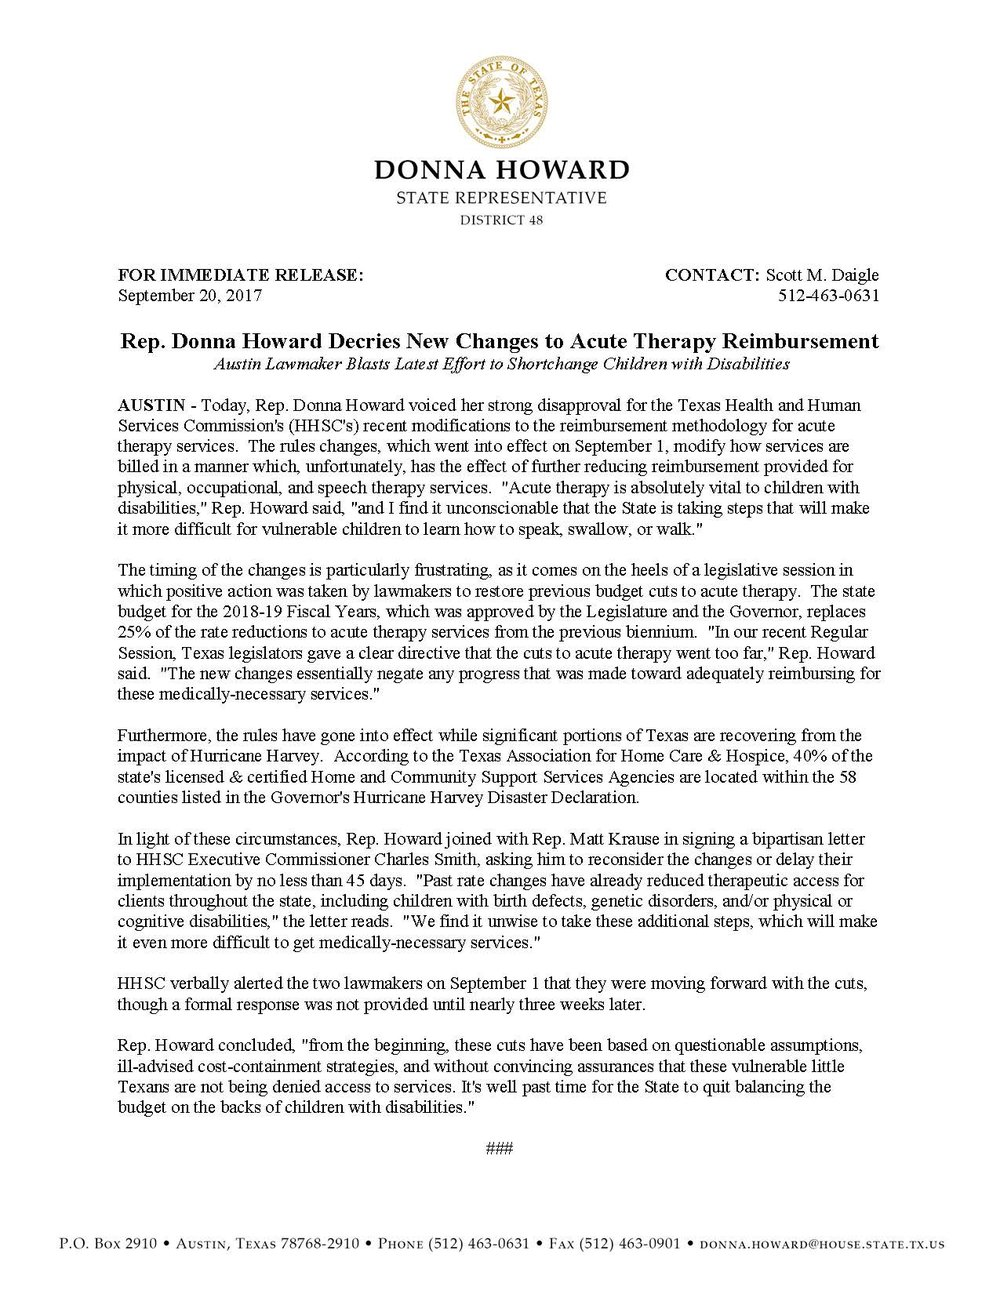 Rep.  Donna Howard_Statement on Acute Therapy Rules Changes_09.20.2017.jpg